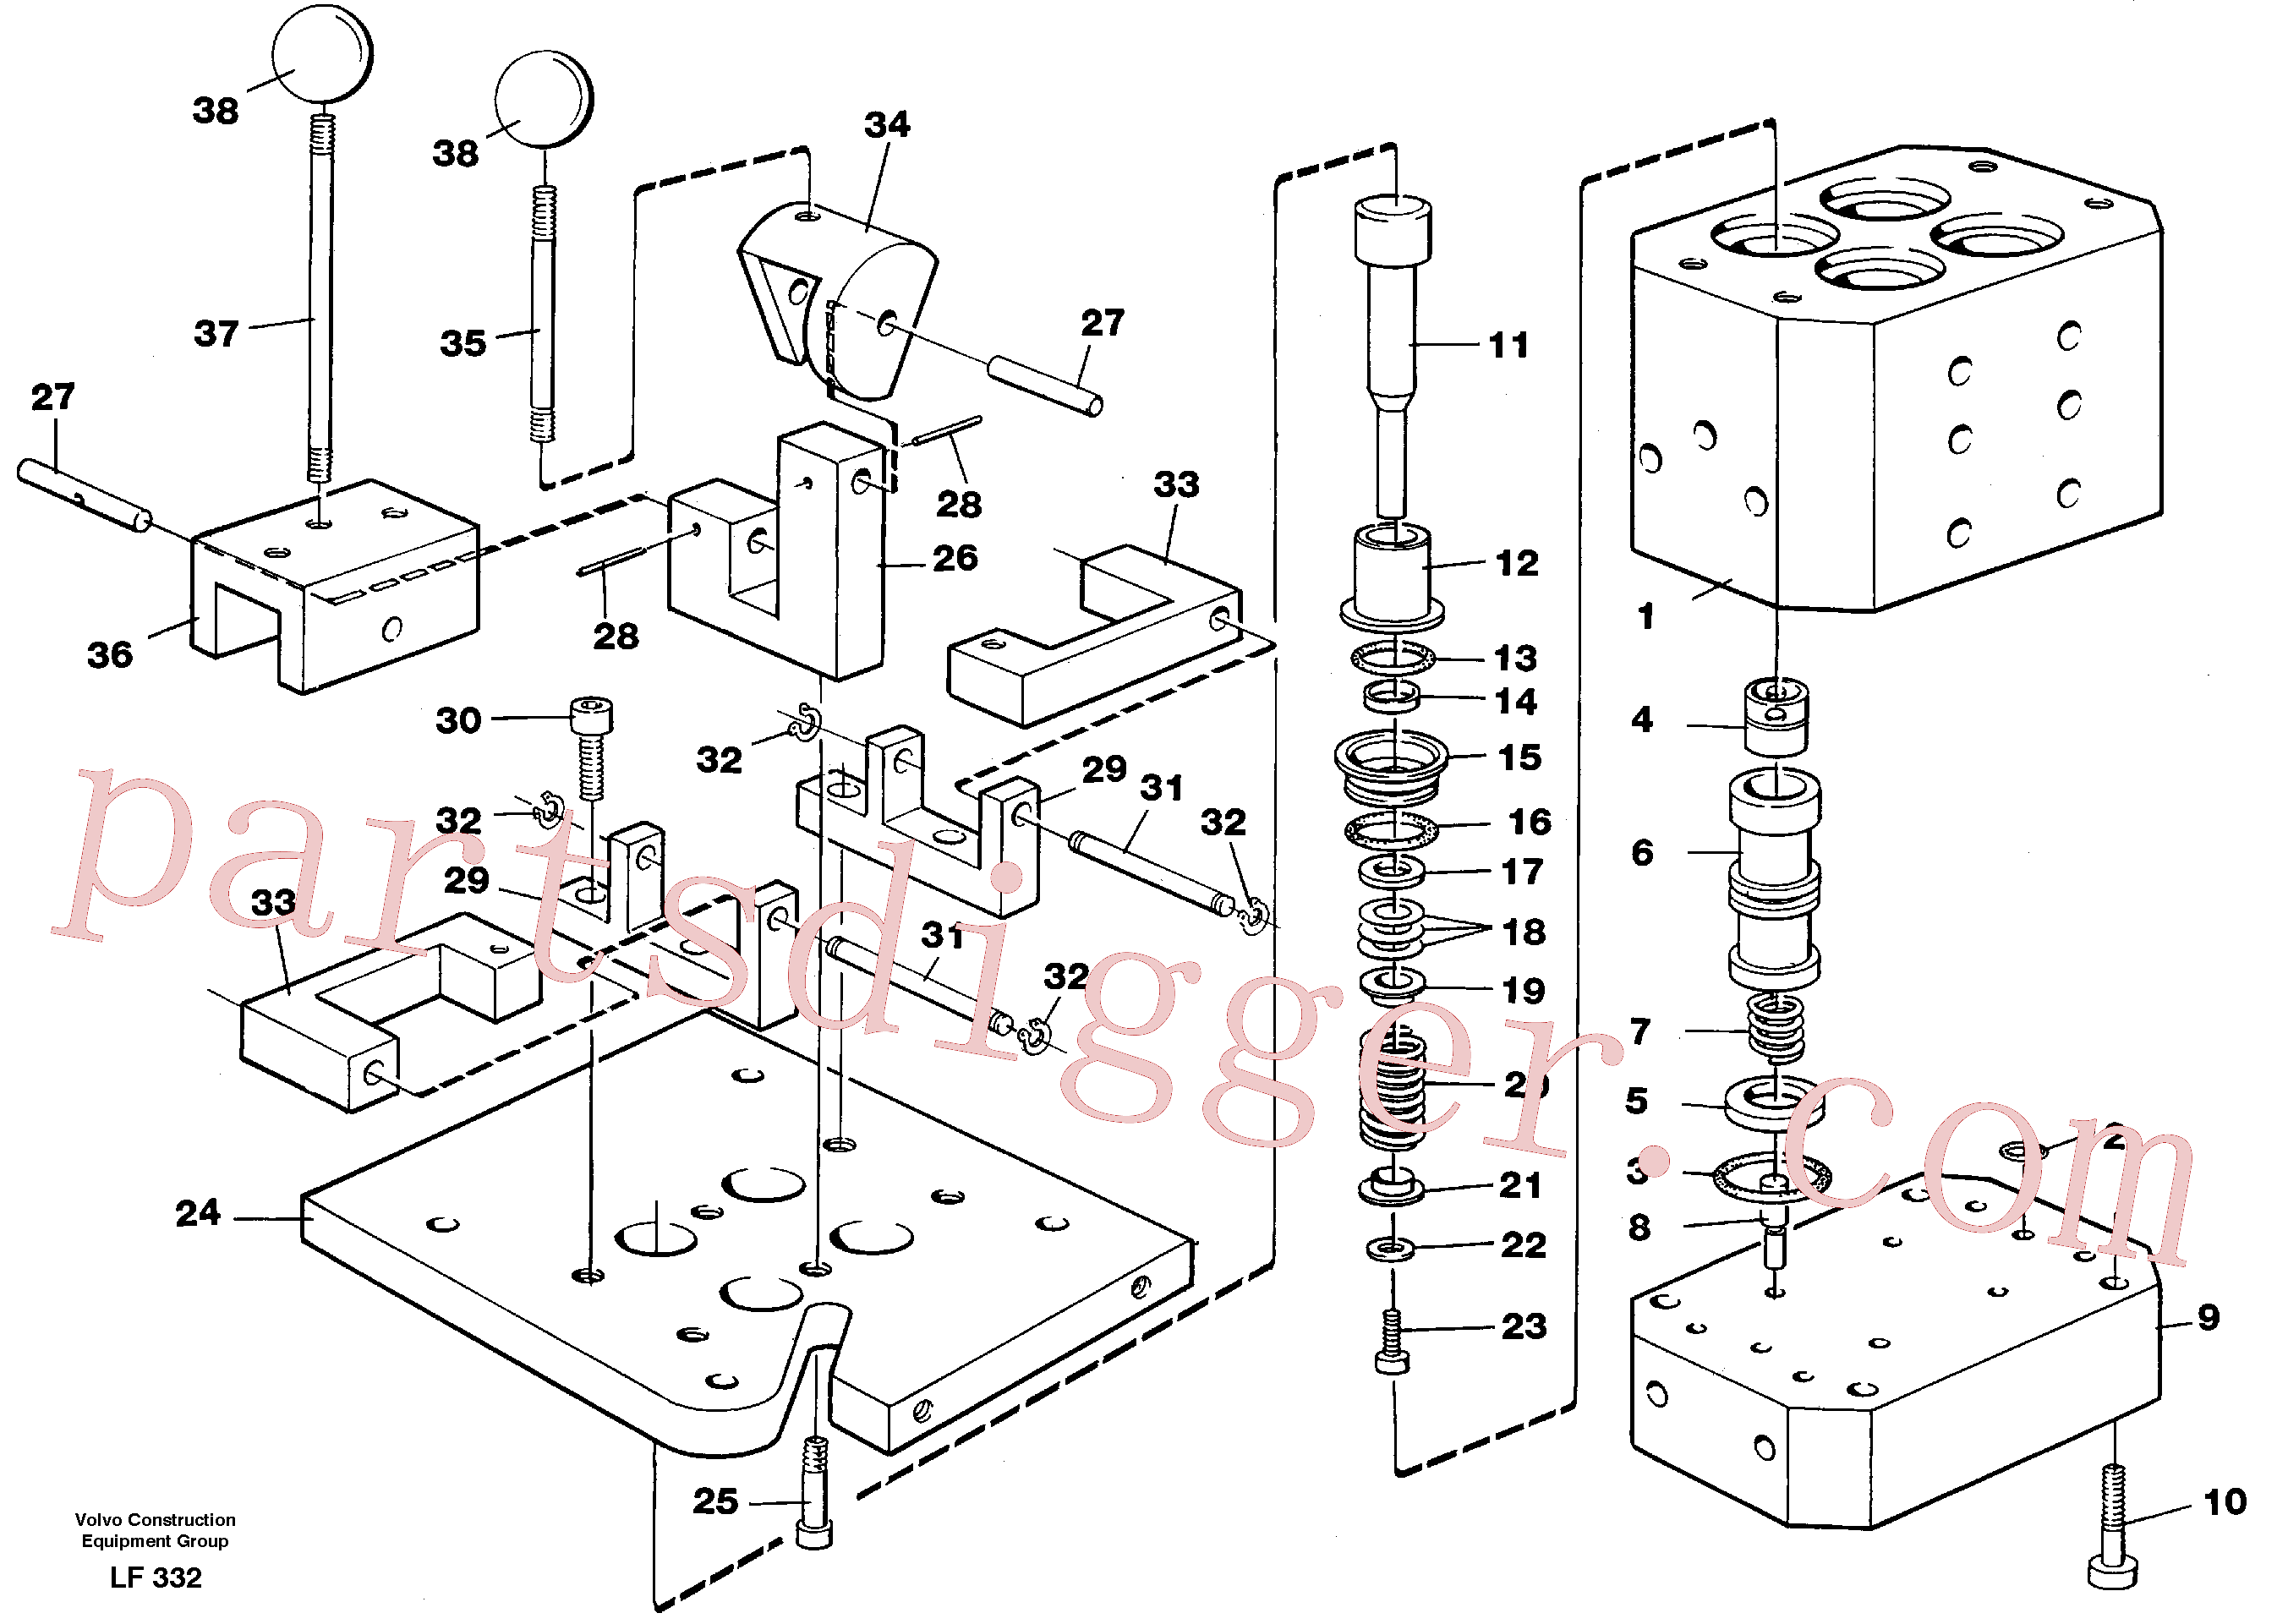 VOE940344 for Volvo Control pressure valve(LF332 assembly)